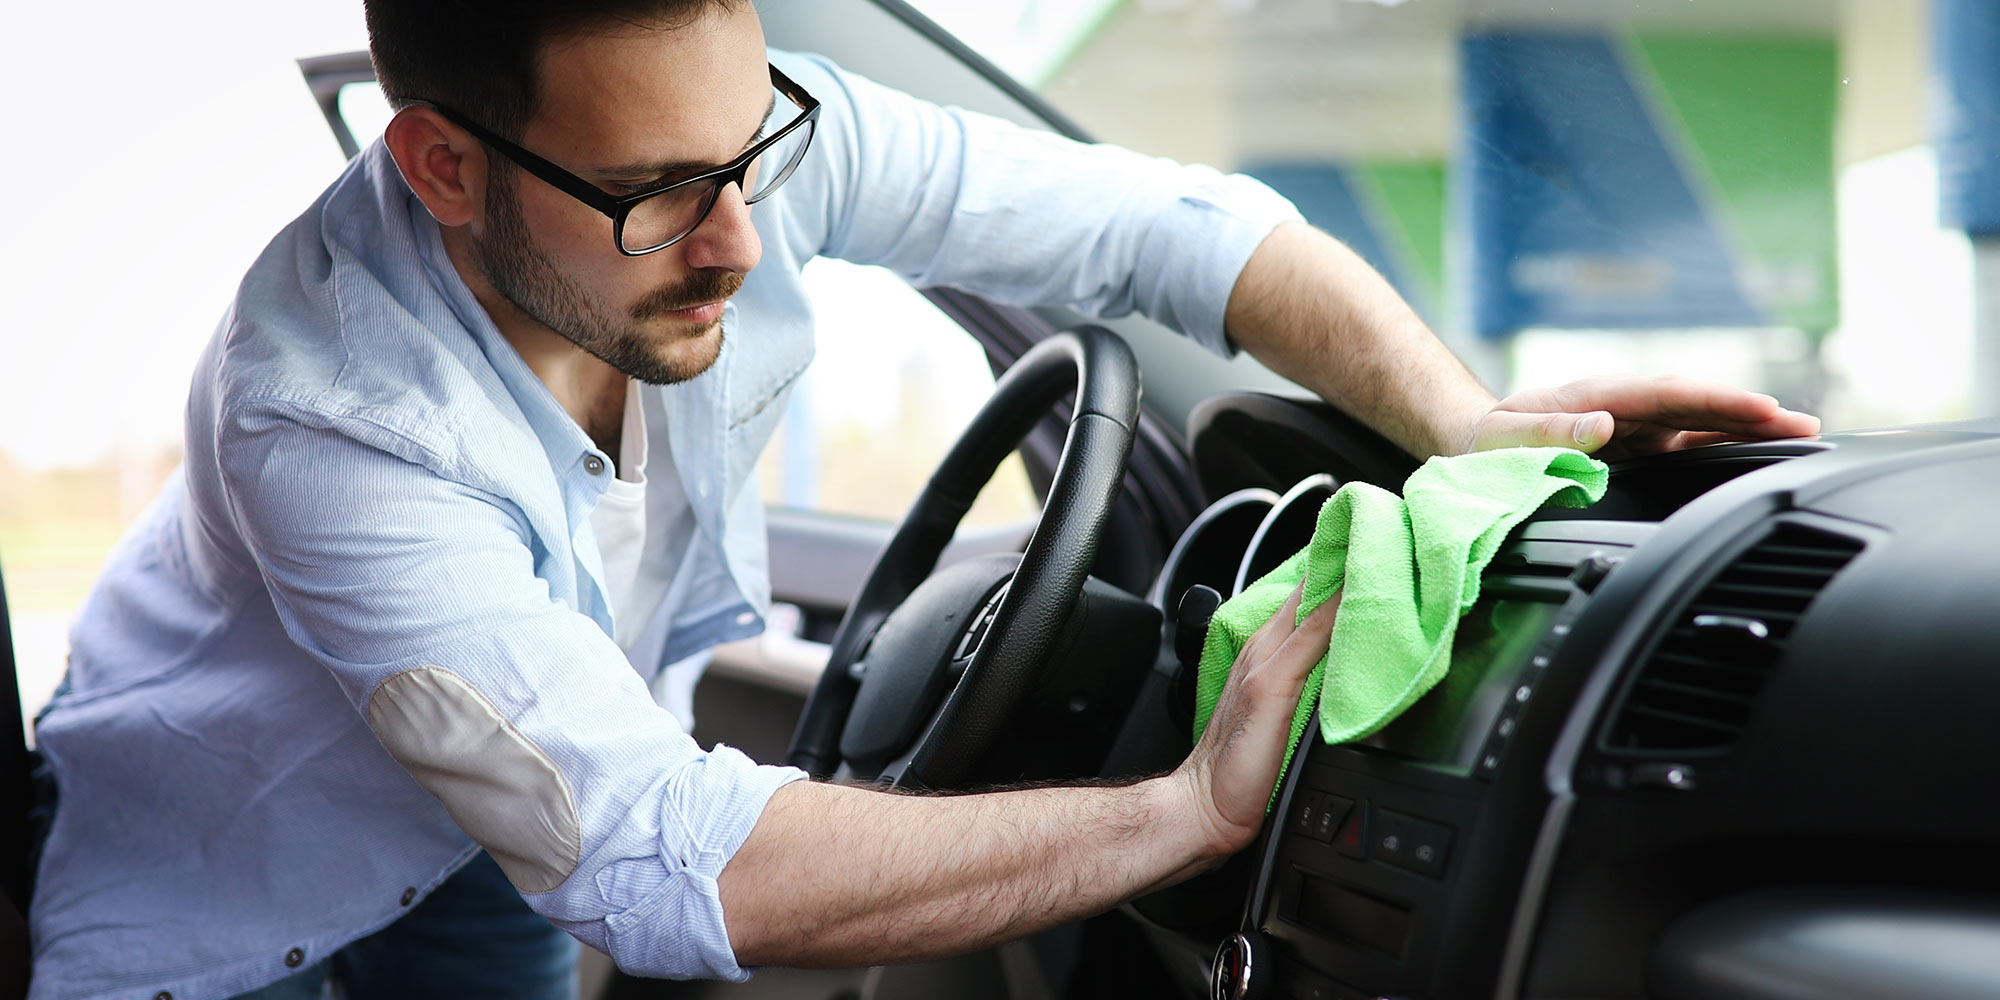 Keep several microfiber cloths underneath the front seat of your vehicle. Use them to dust off the dashboard, radio and steering wheel.